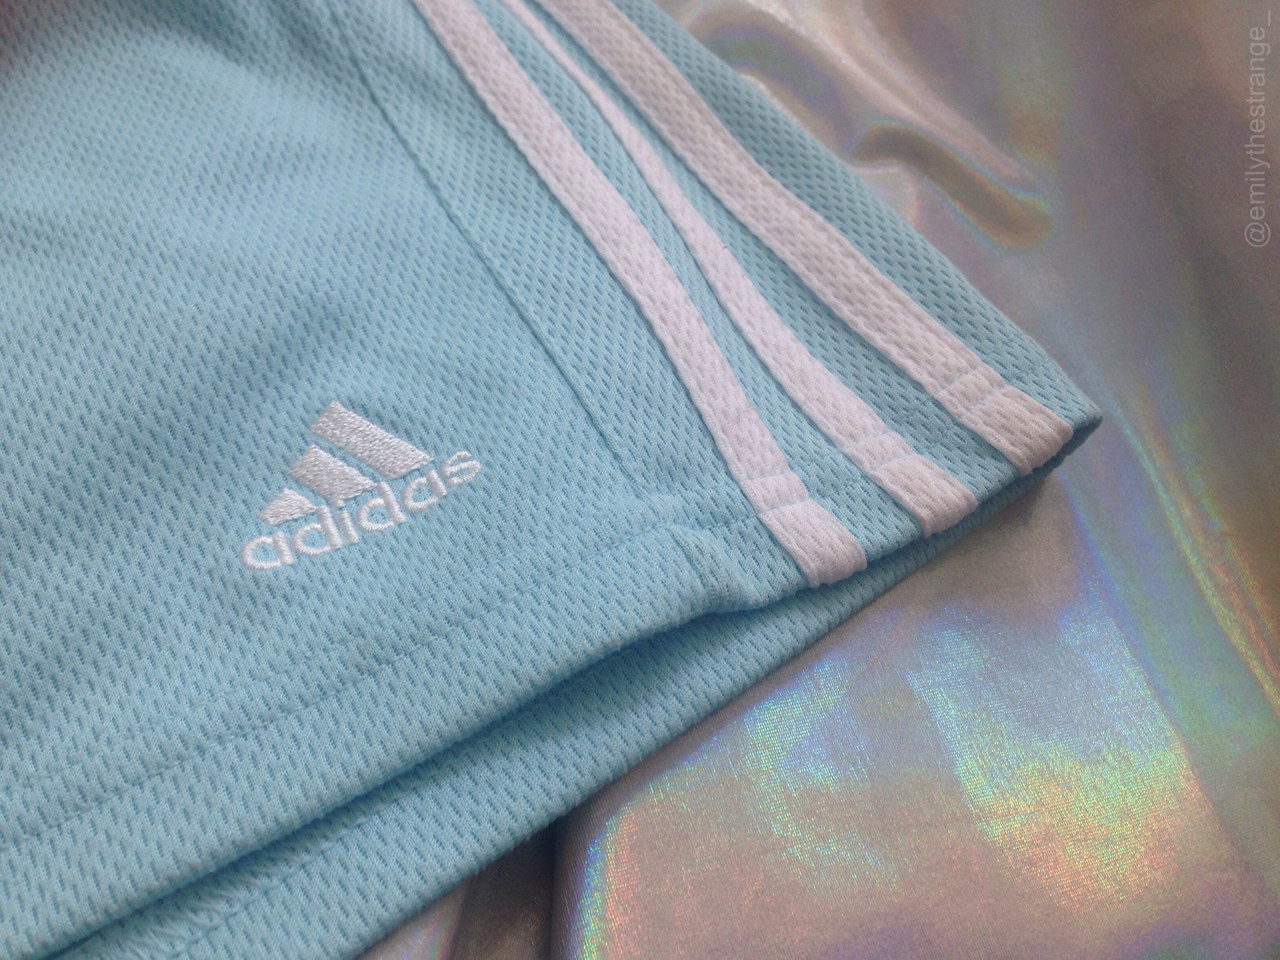 adidas, aesthetic, argentina and athletic